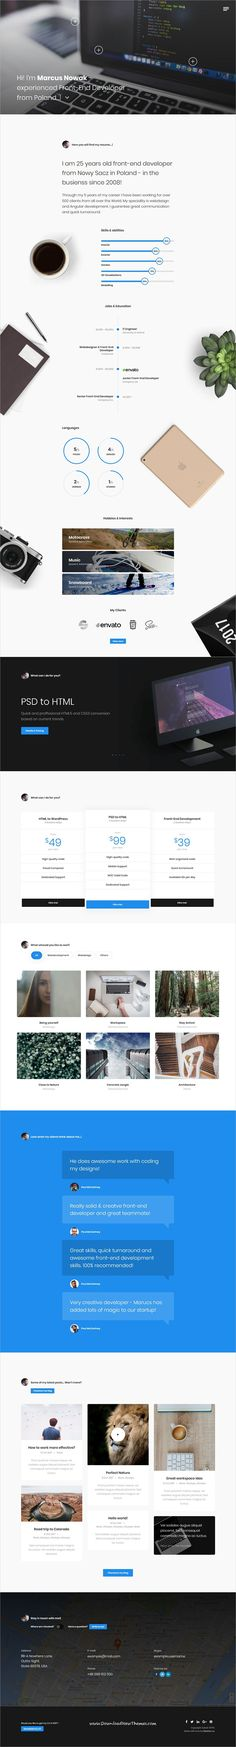 Personal Resume Website Examples Personal Website Pinterest - personal resume websites